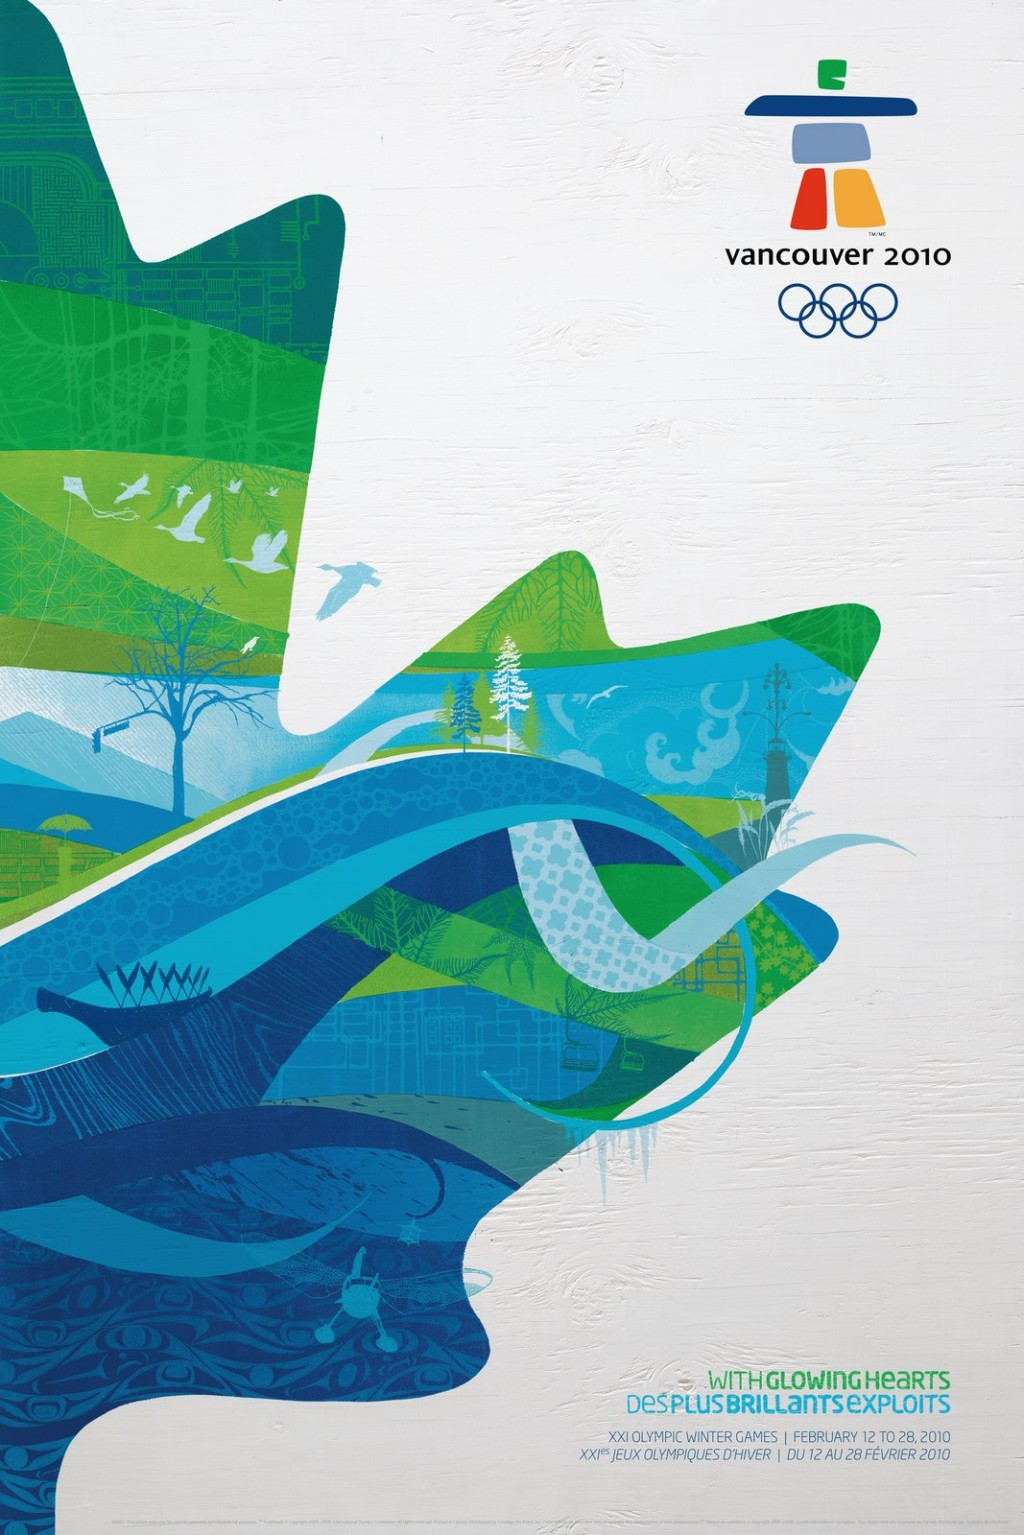 vancouver 2010 official poster